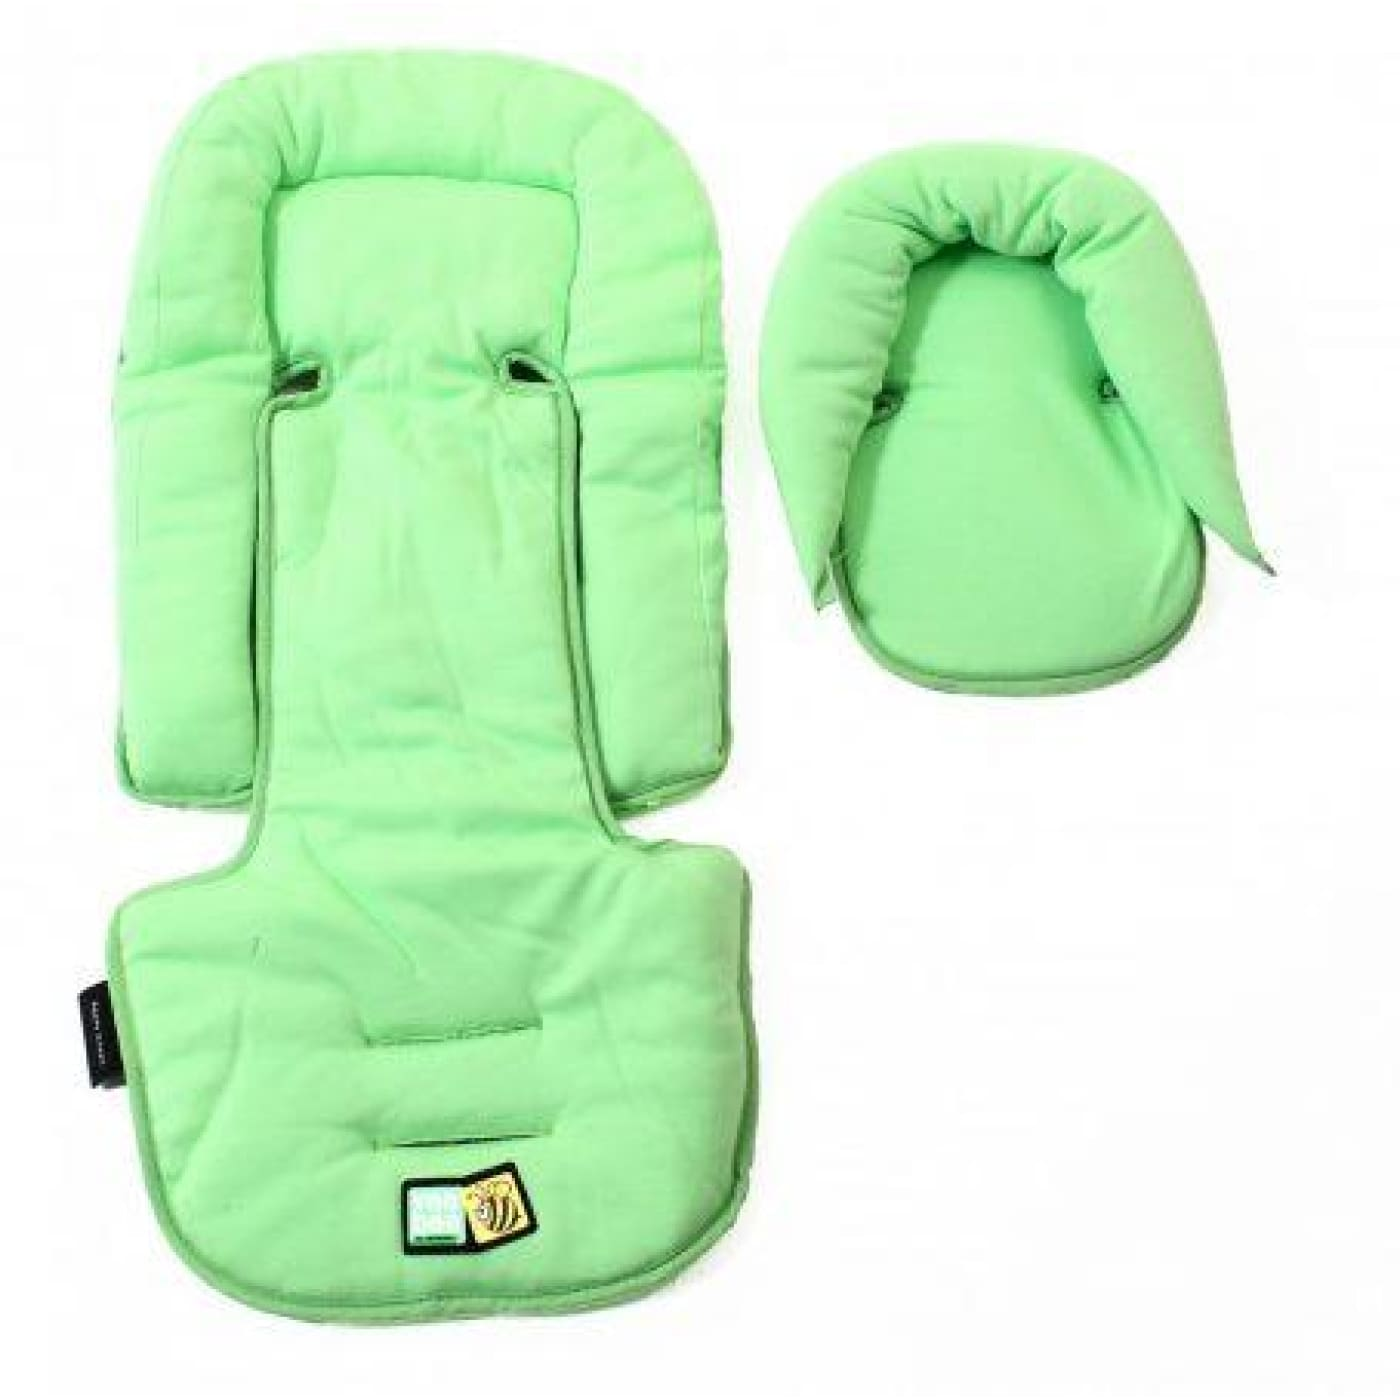 Veebee Allsorts Seat Pad & Head Hugger - Green Apple - PRAMS & STROLLERS - HEAD SUPPORTS